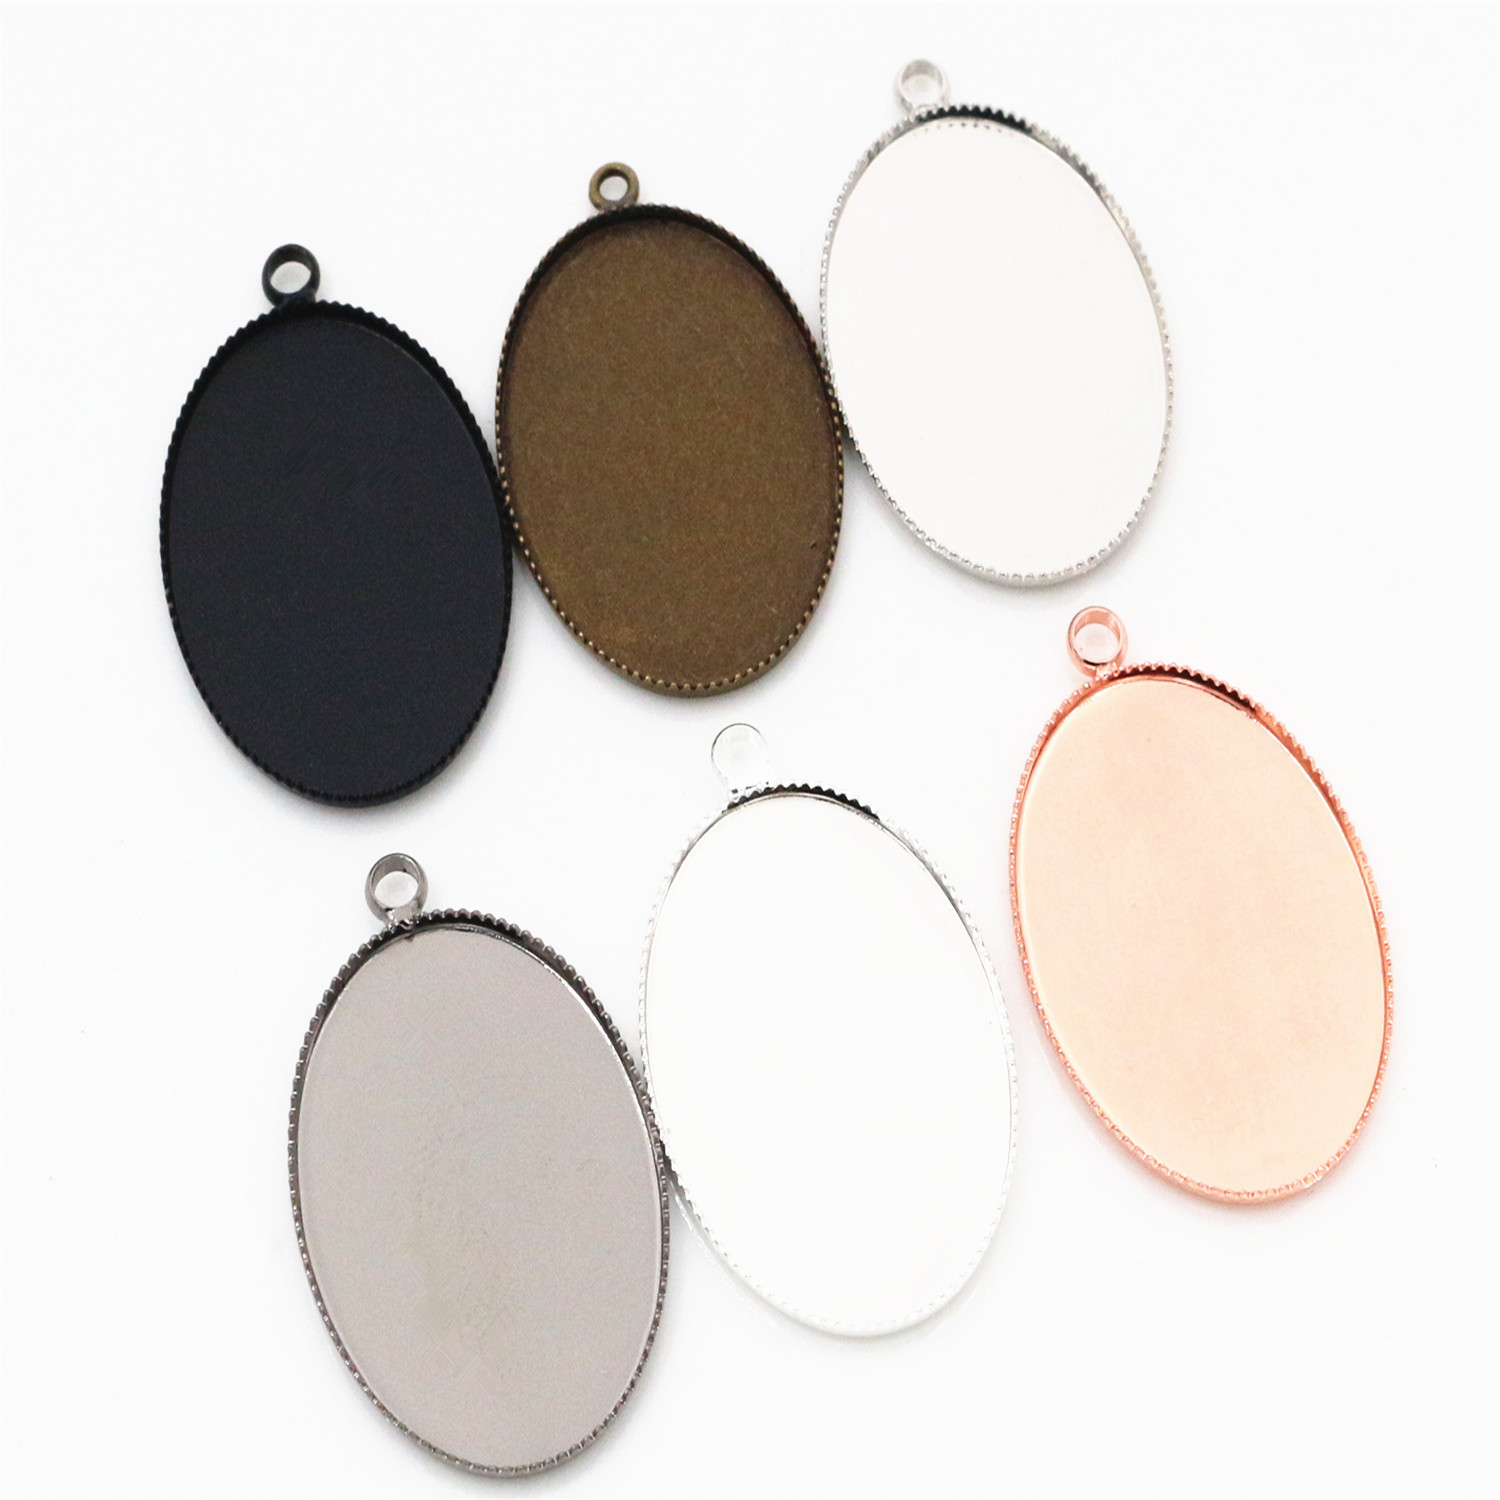 10pcs 18x25mm High Quality 6 Colors Plated Copper Oval Tooth Cabochon Base Cameo Settings Cabochon Cameo Base